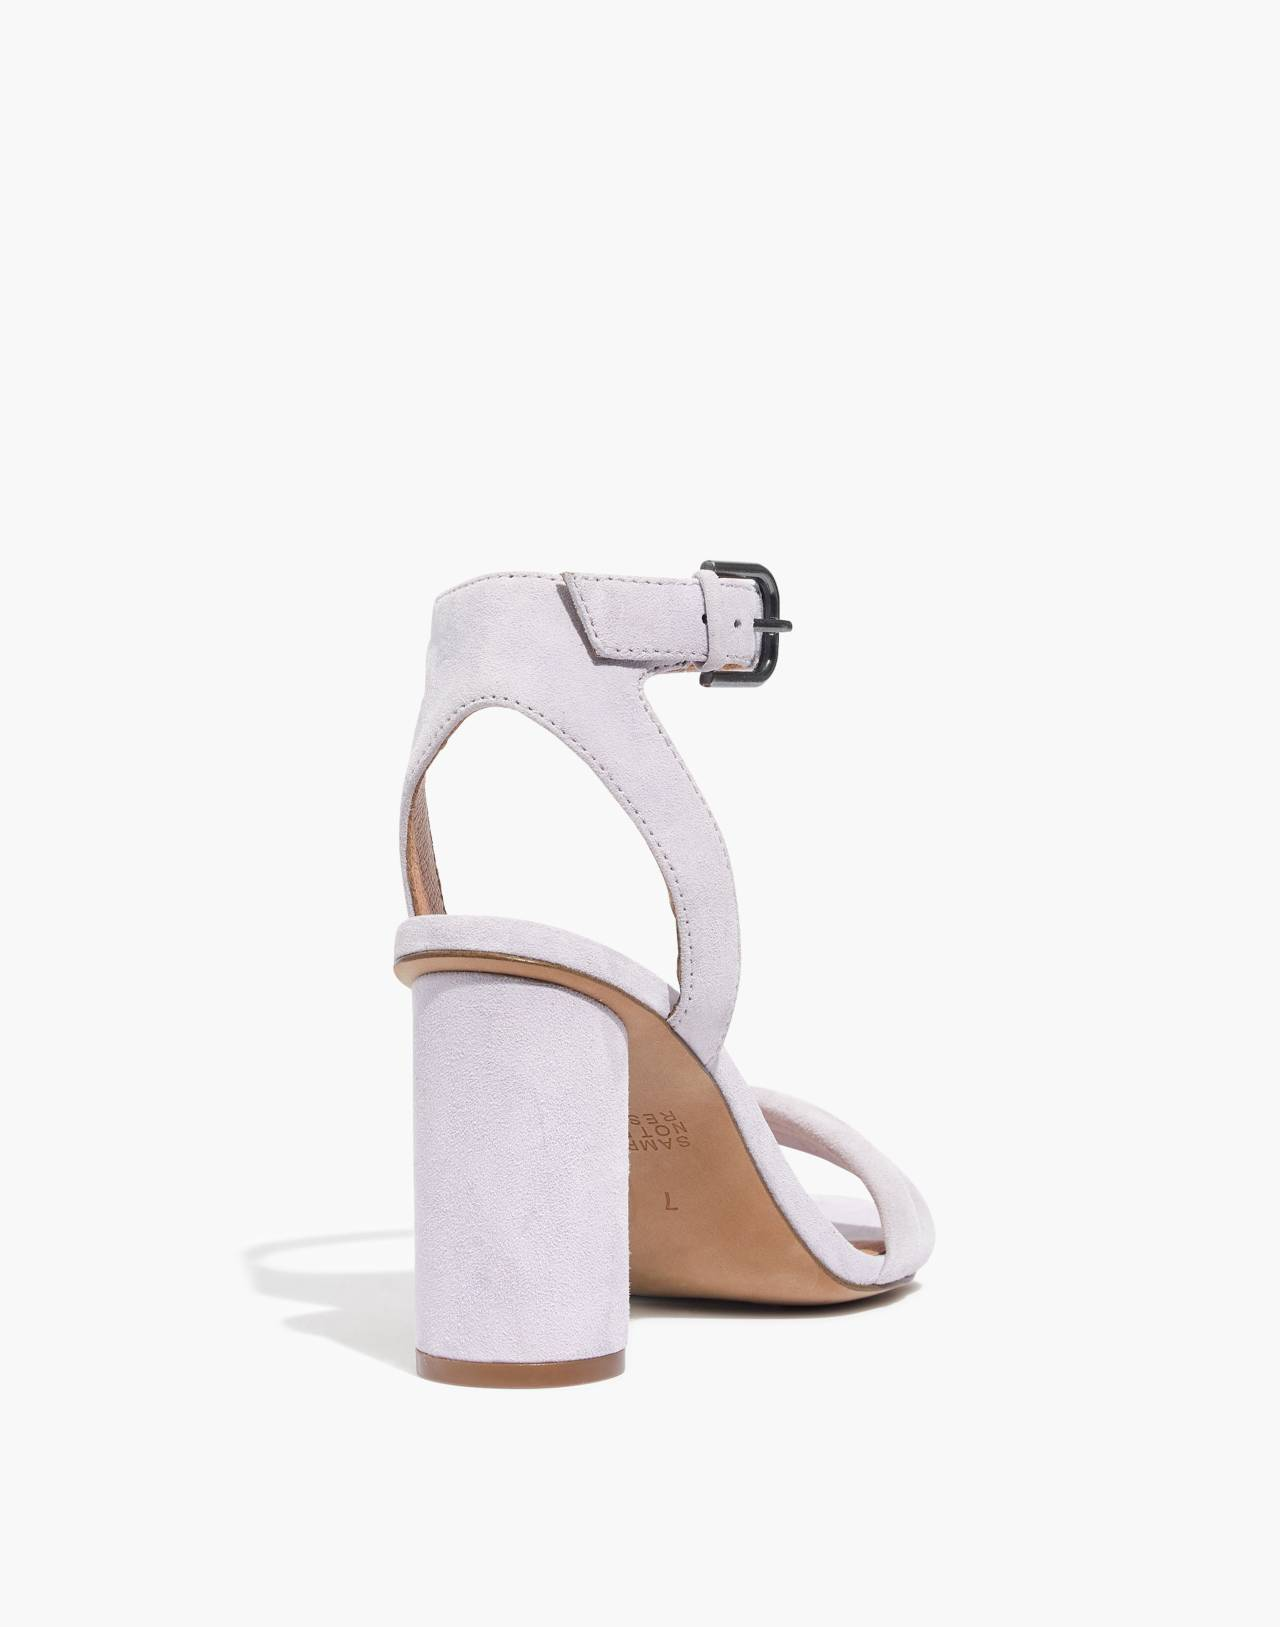 The Rosalie High-Heel Sandal in sundrenched lilac image 3